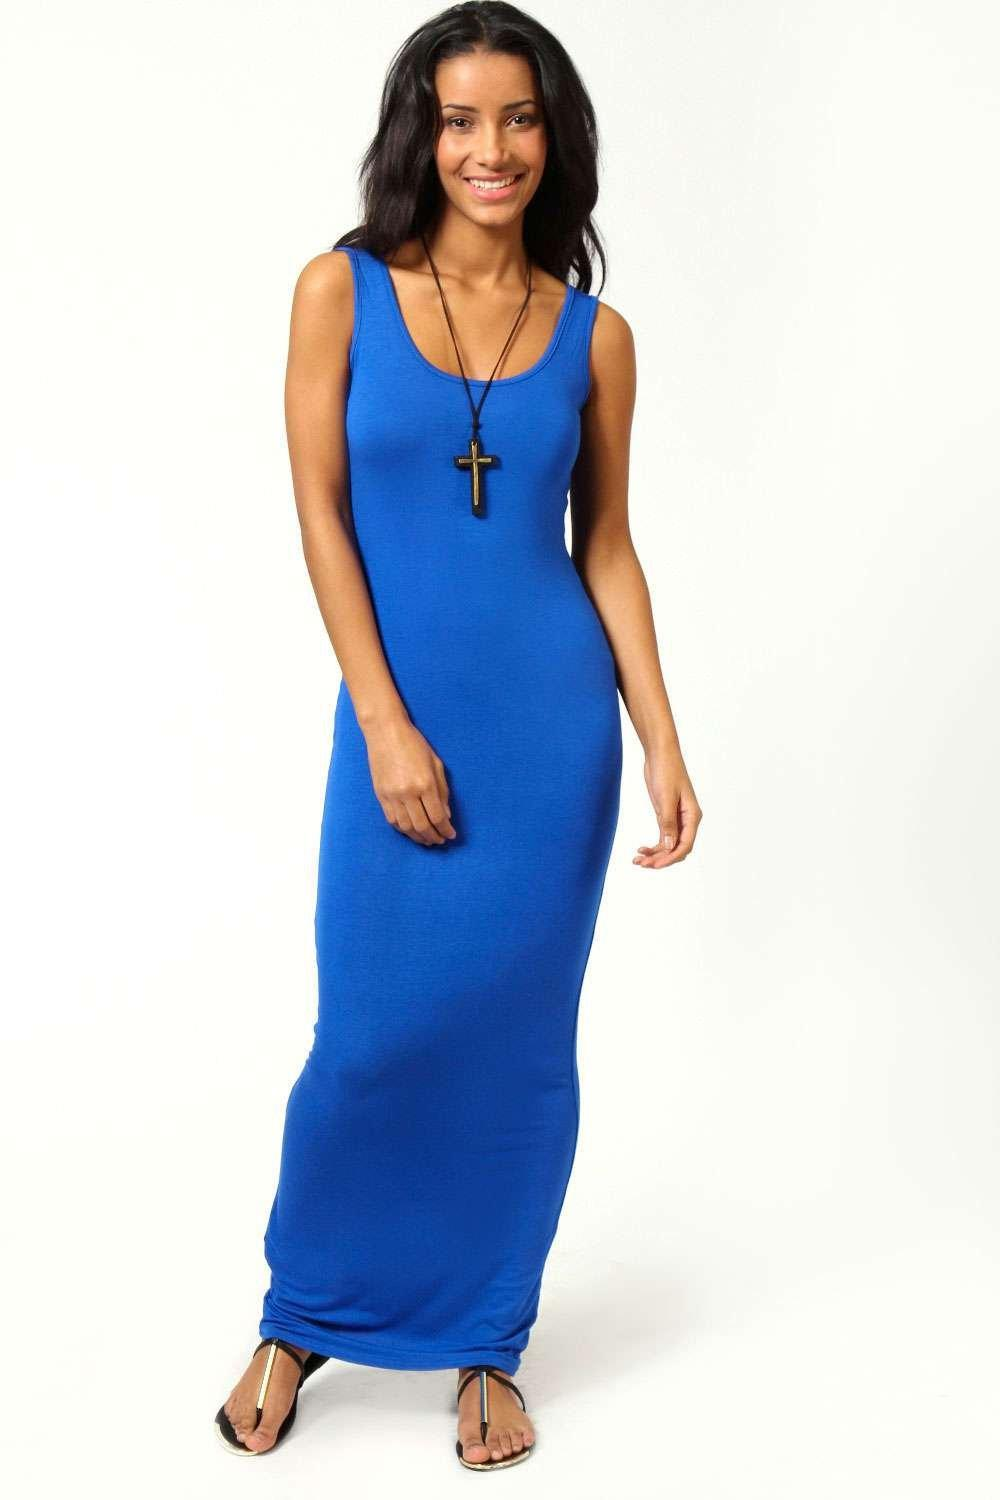 Boohoo Petite Rib Scoop Neck Maxi Dress Discounts For Sale Official Sale Online Outlet Newest Bzams